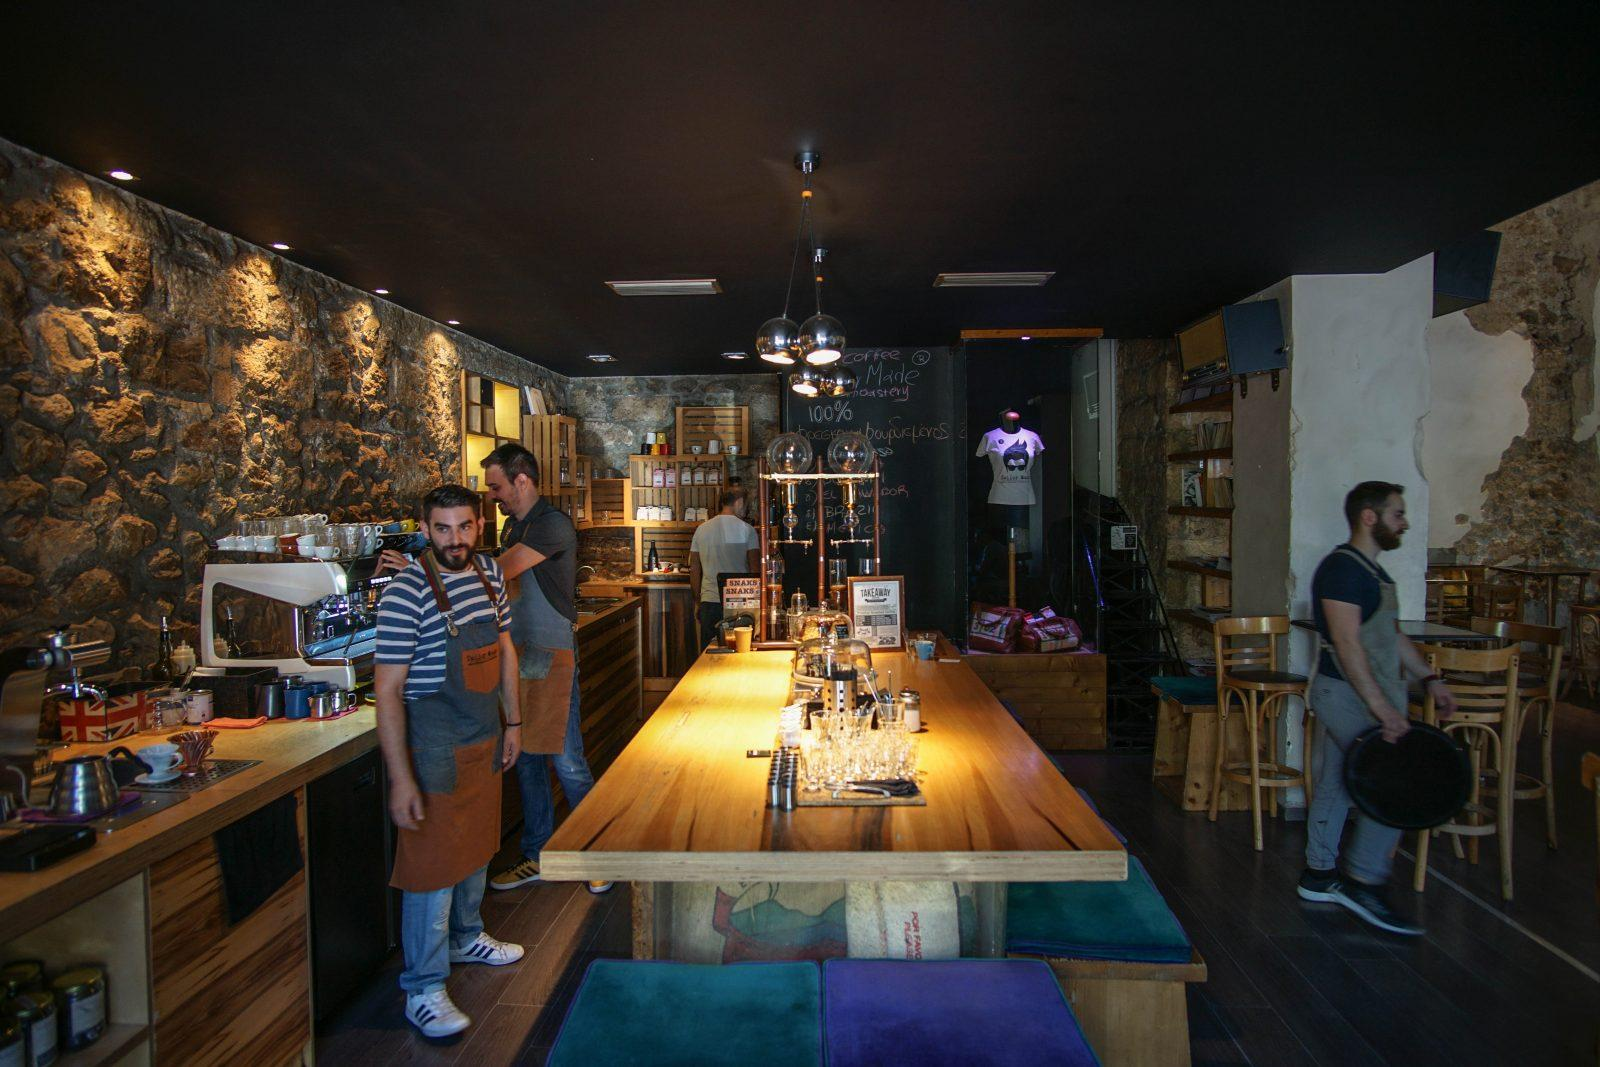 View of the coffee bar